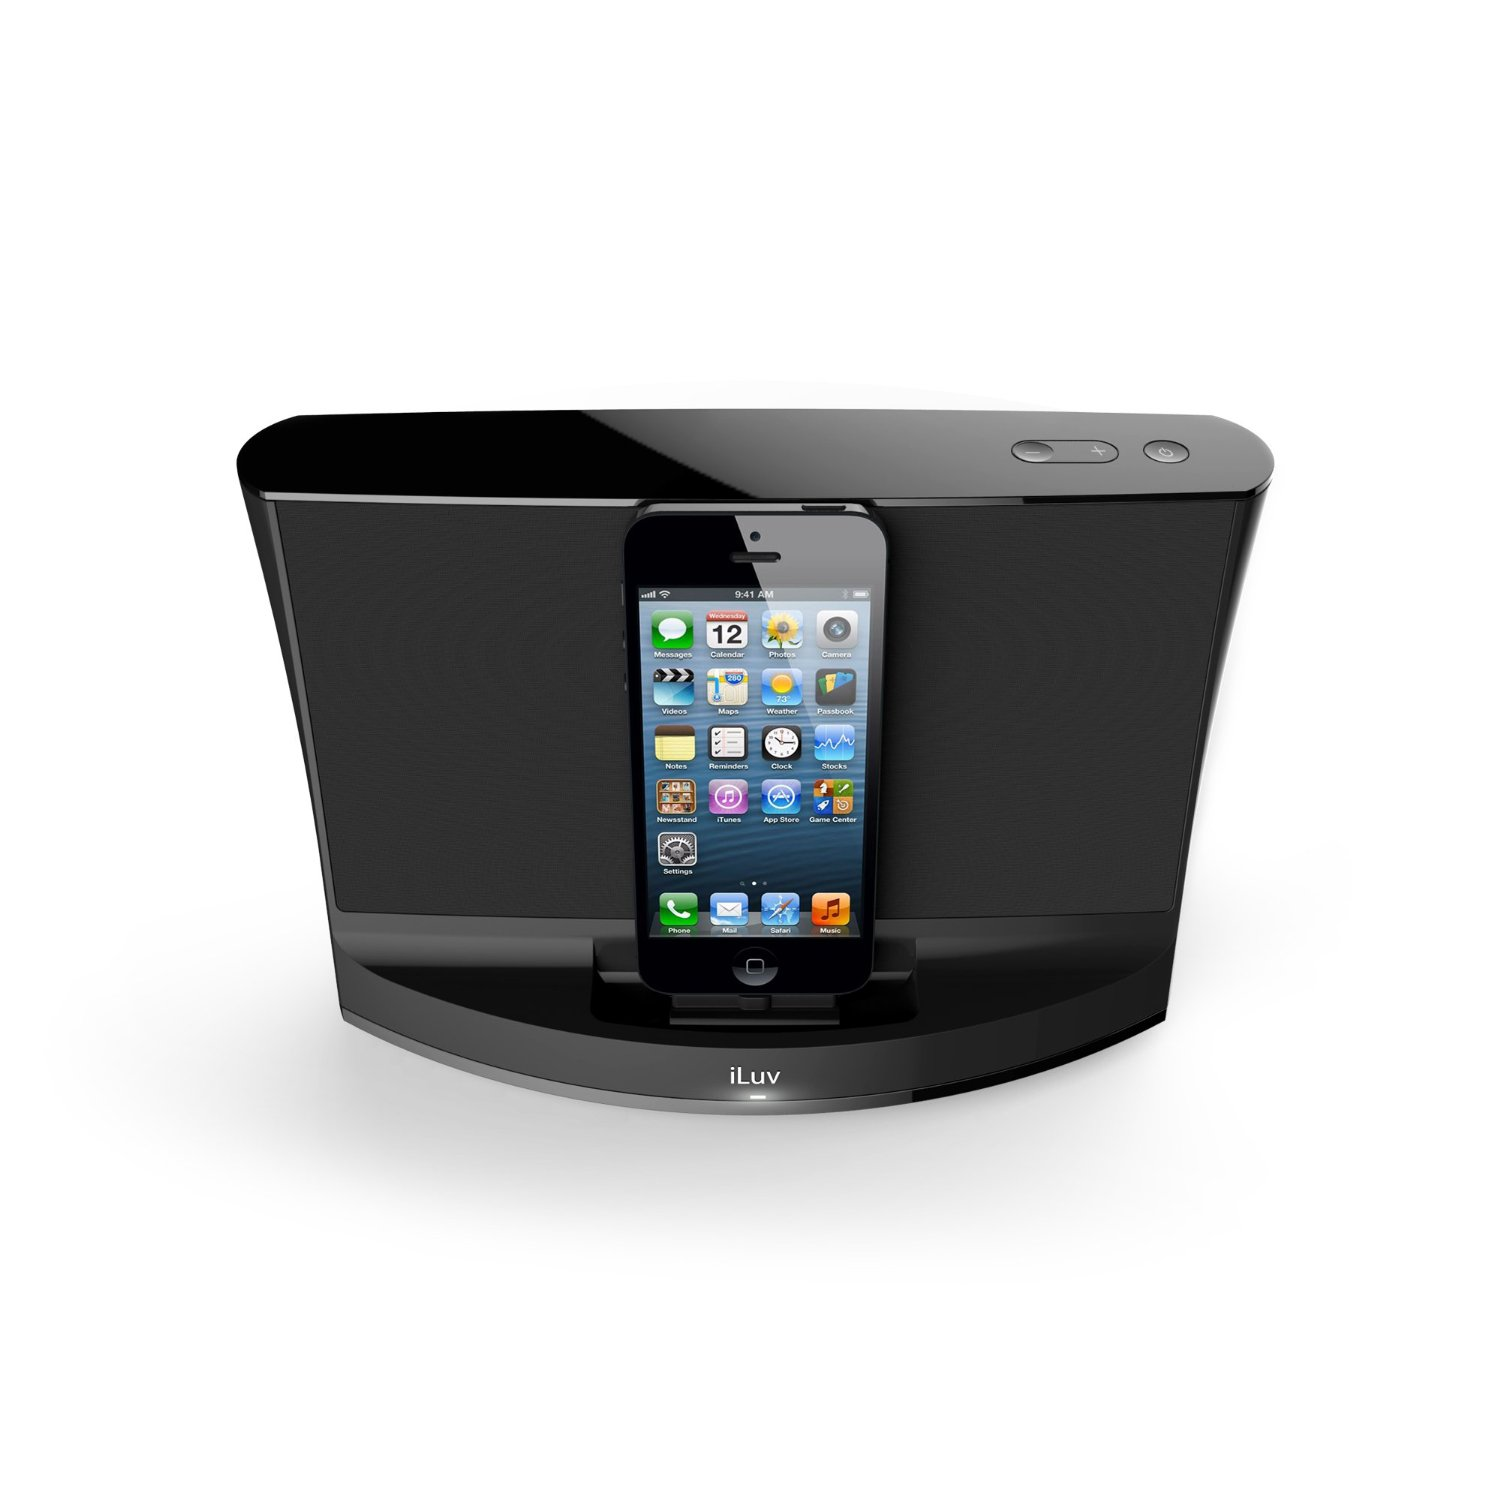 iluv speaker with lightning docking station for iphone 5. Black Bedroom Furniture Sets. Home Design Ideas